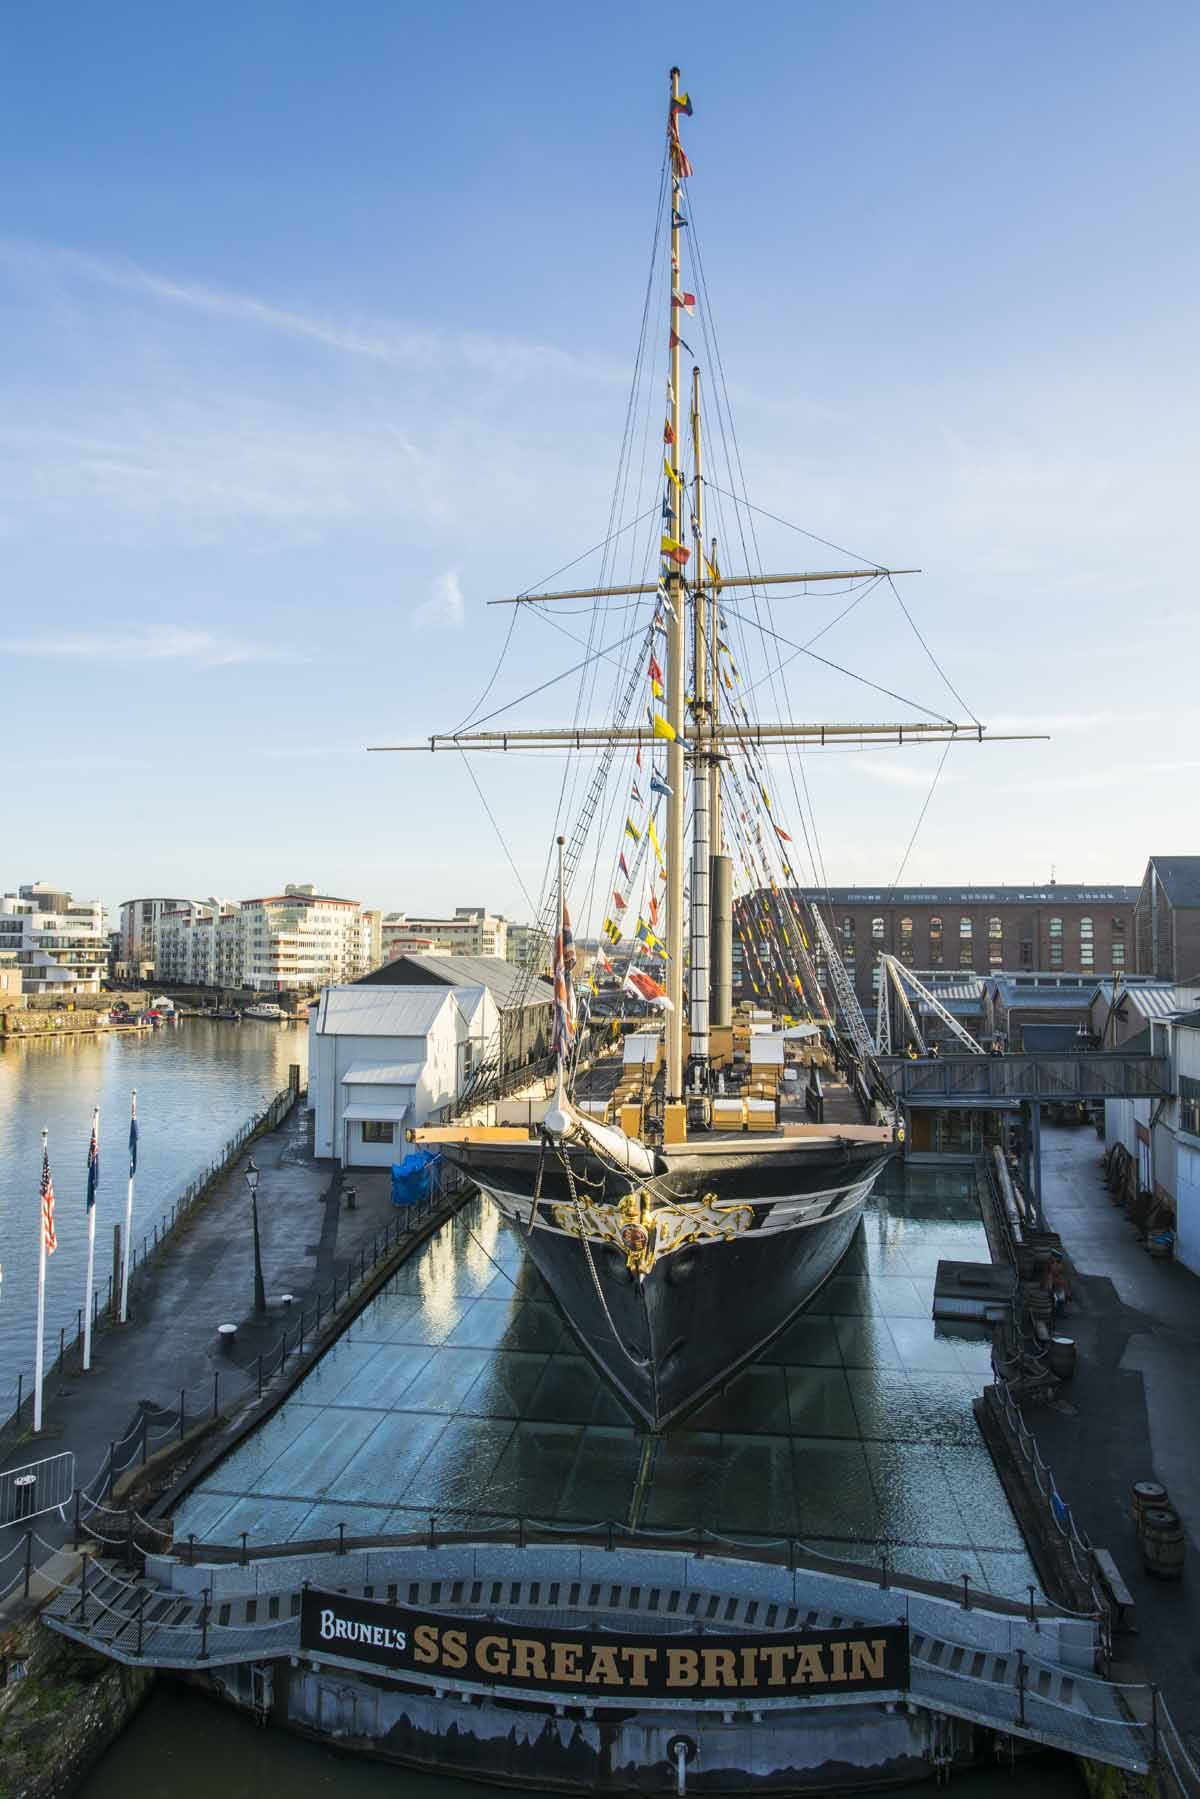 SS Great Britain, de leukste dingen om te doen in Bristol - Map of Joy